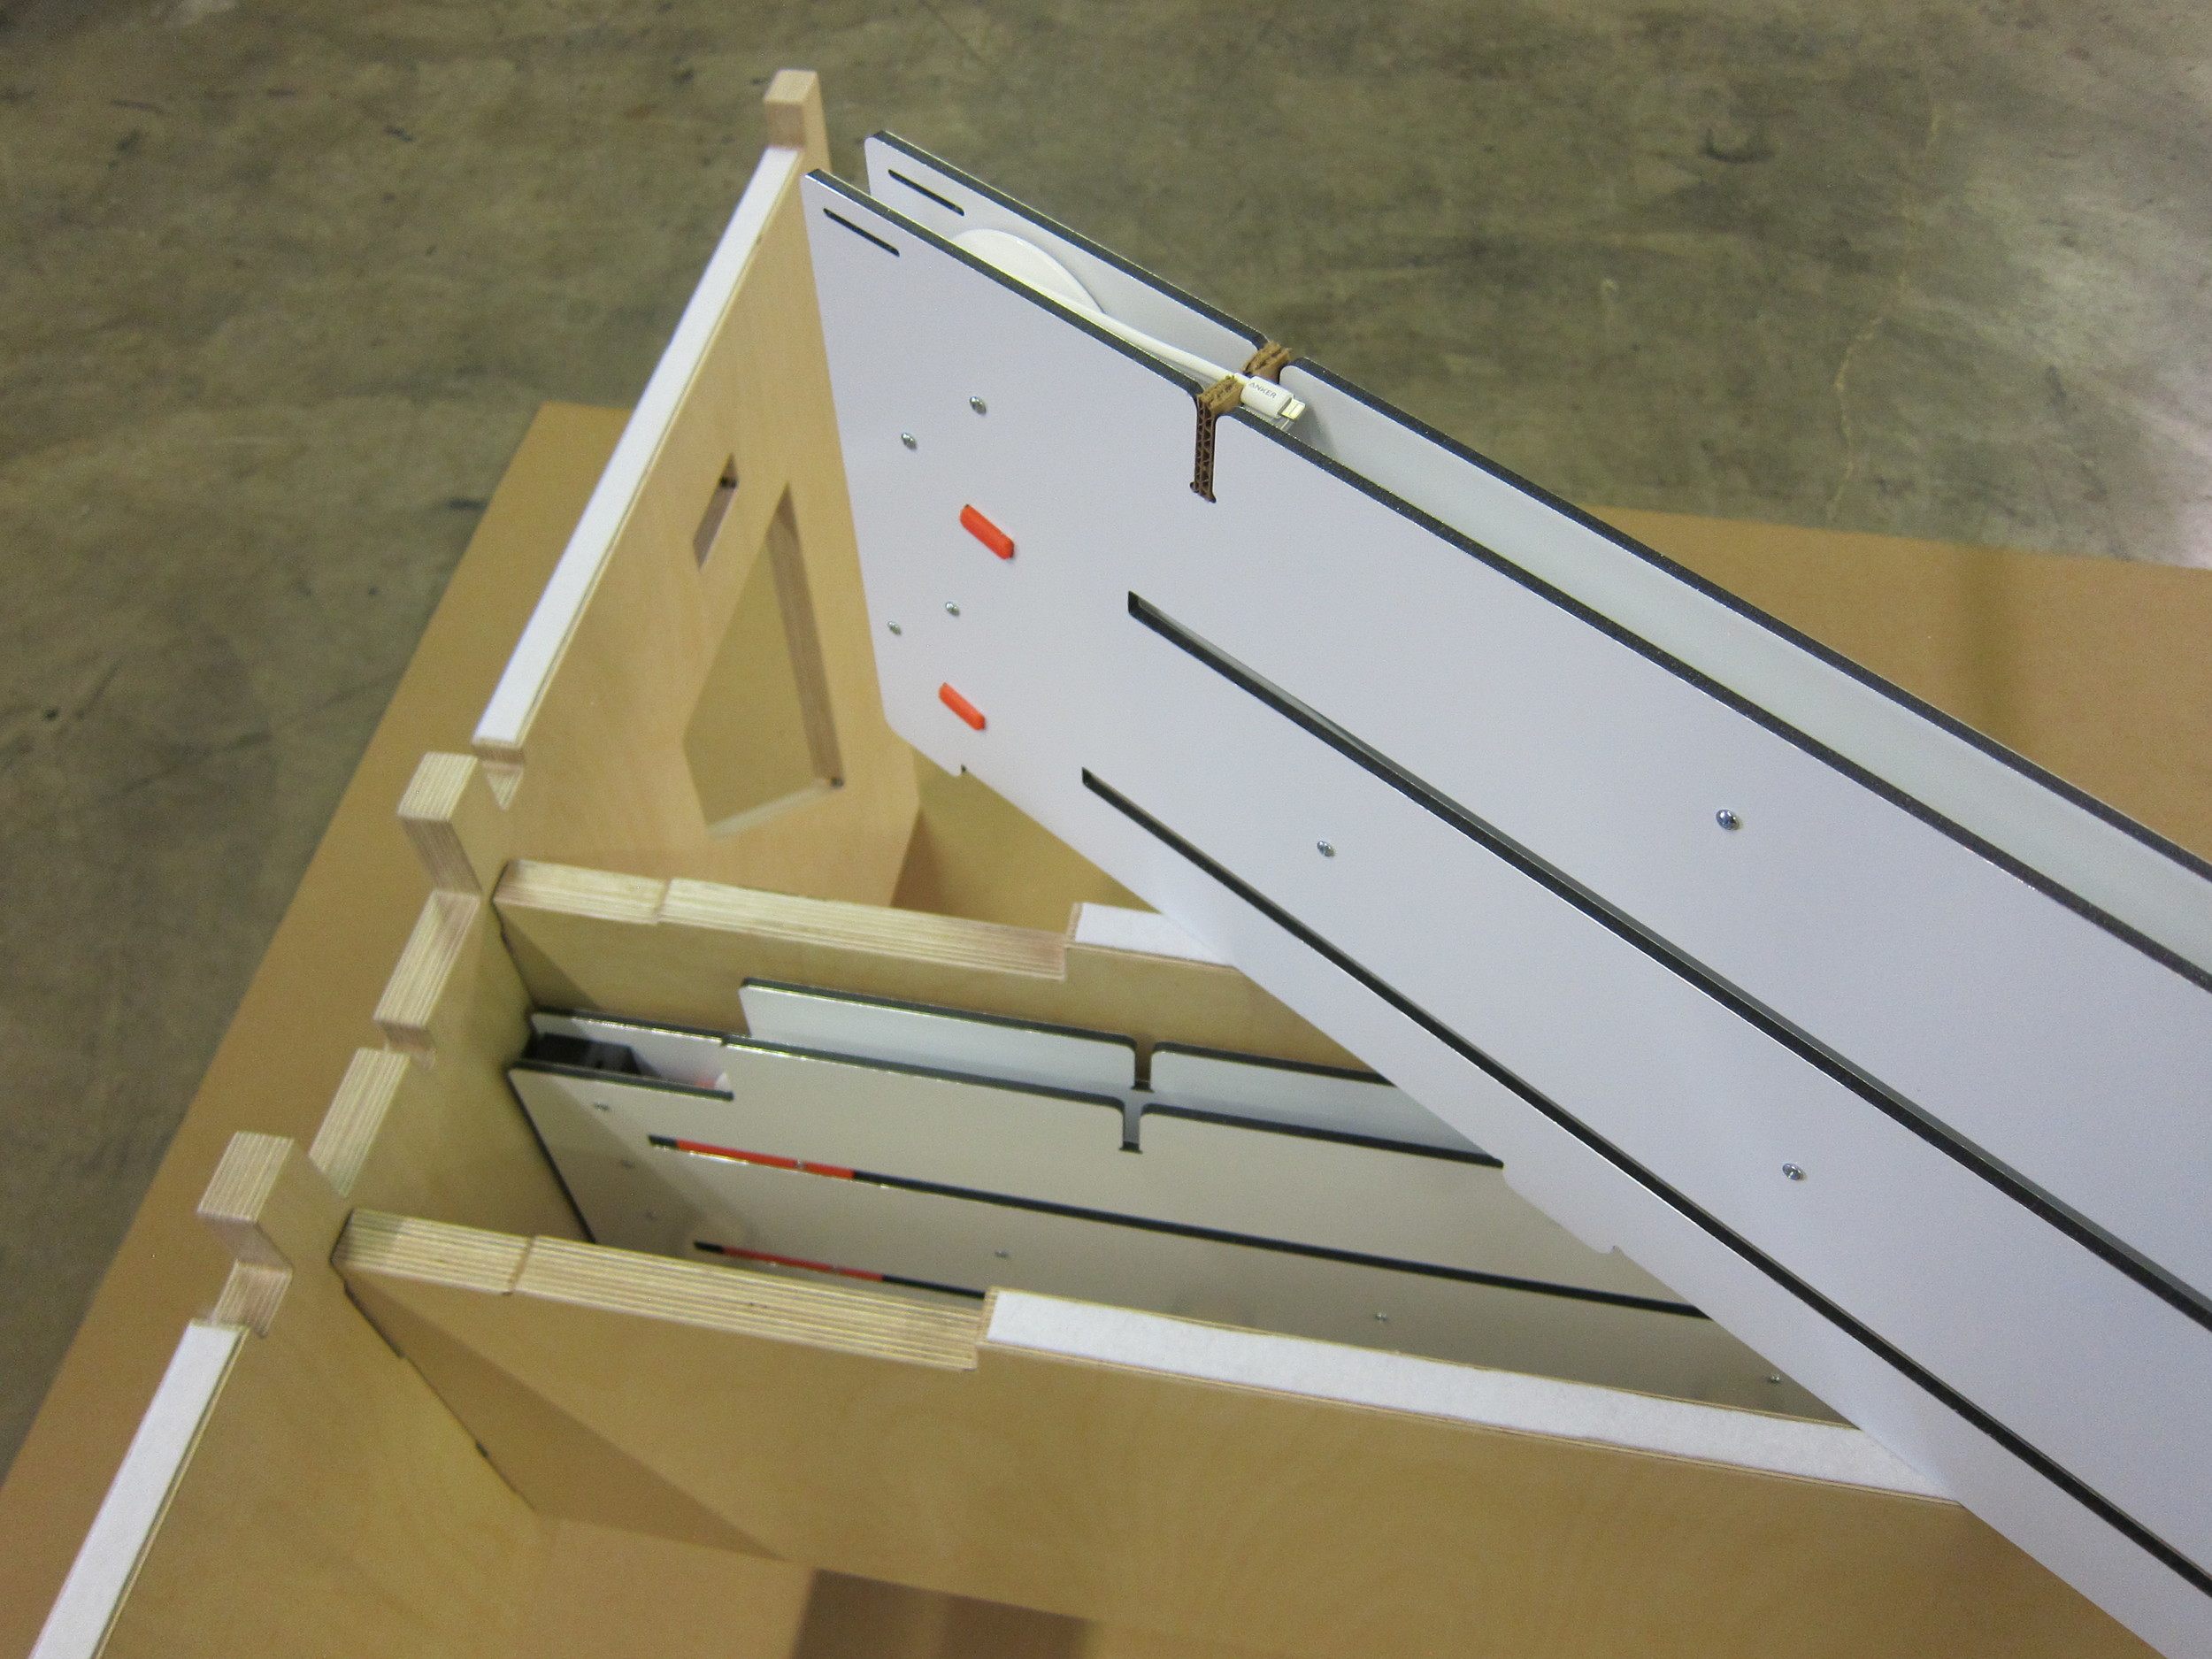 Cable retractors install into WELD Table with no tools or fasteners